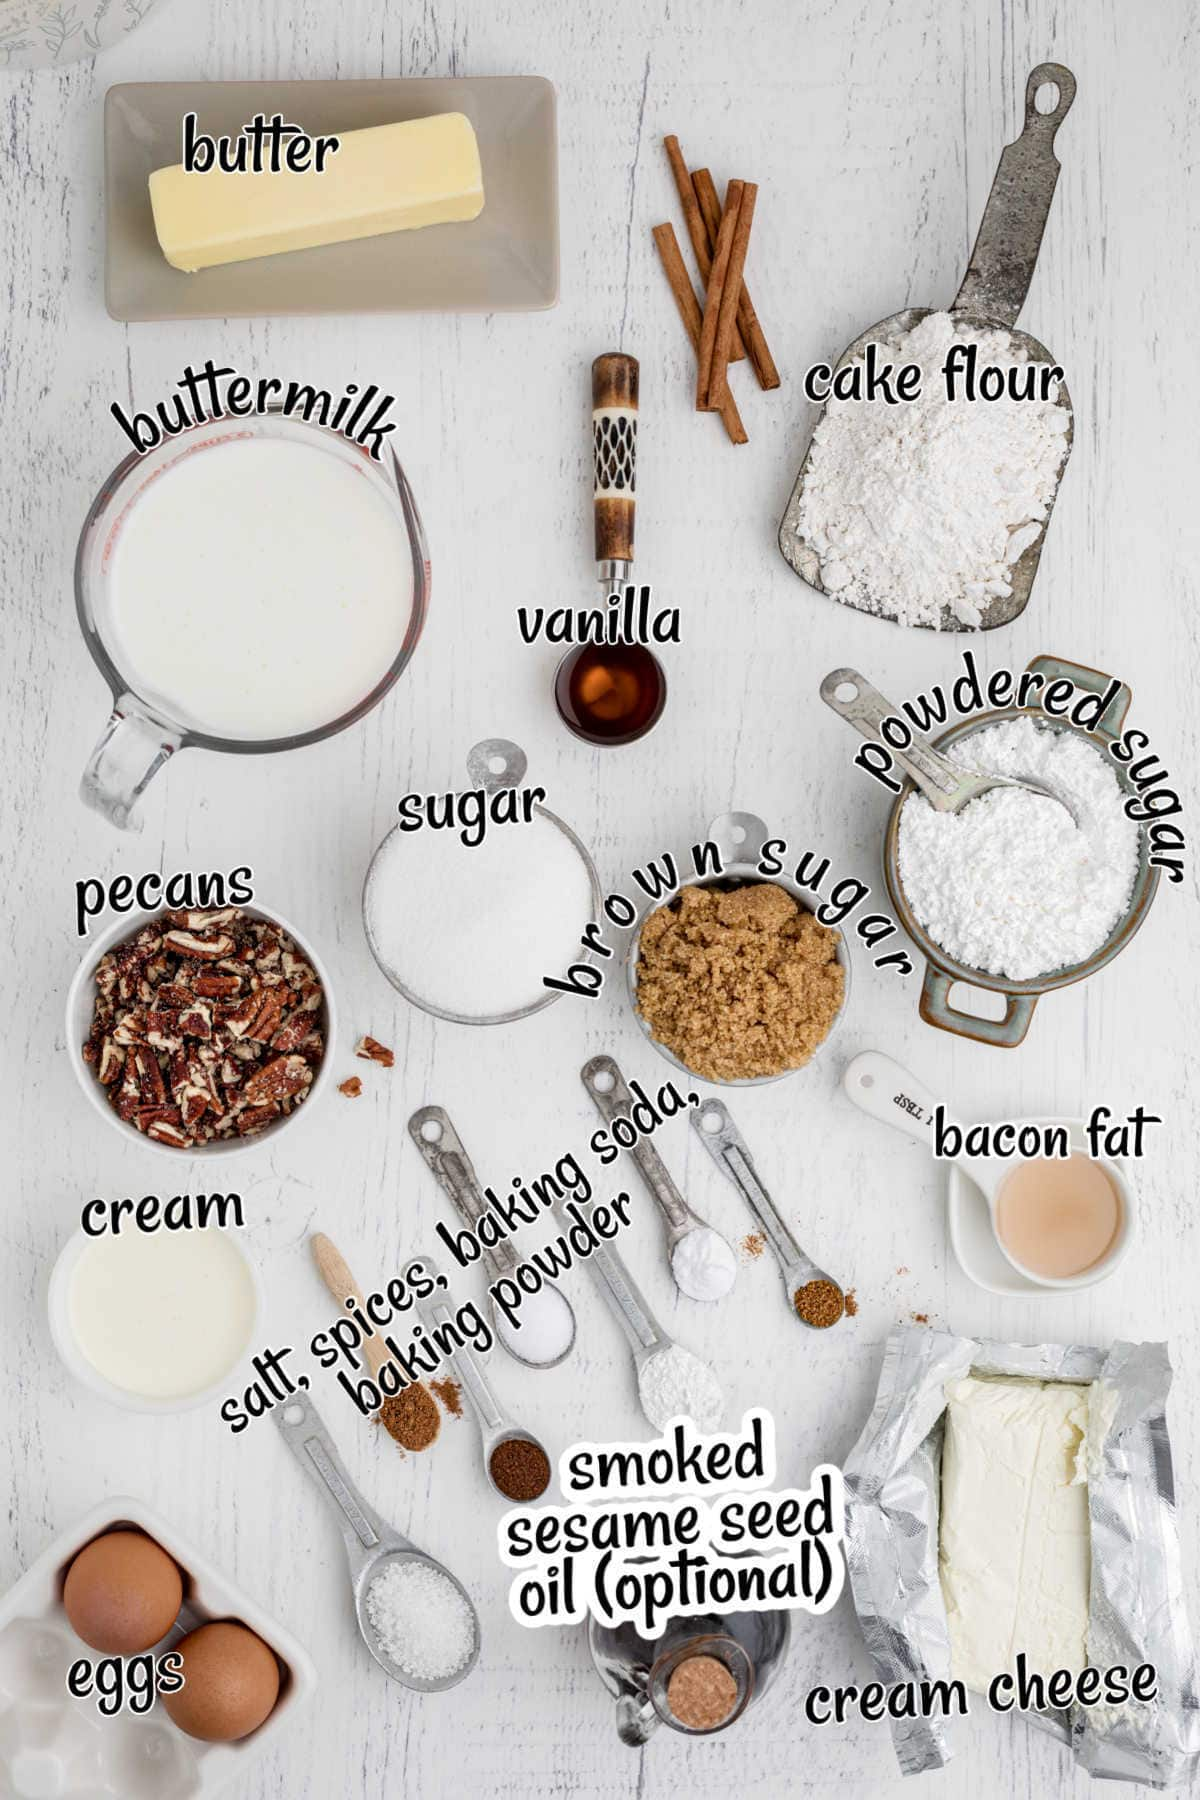 Labeled ingredients for homemade spice cake.